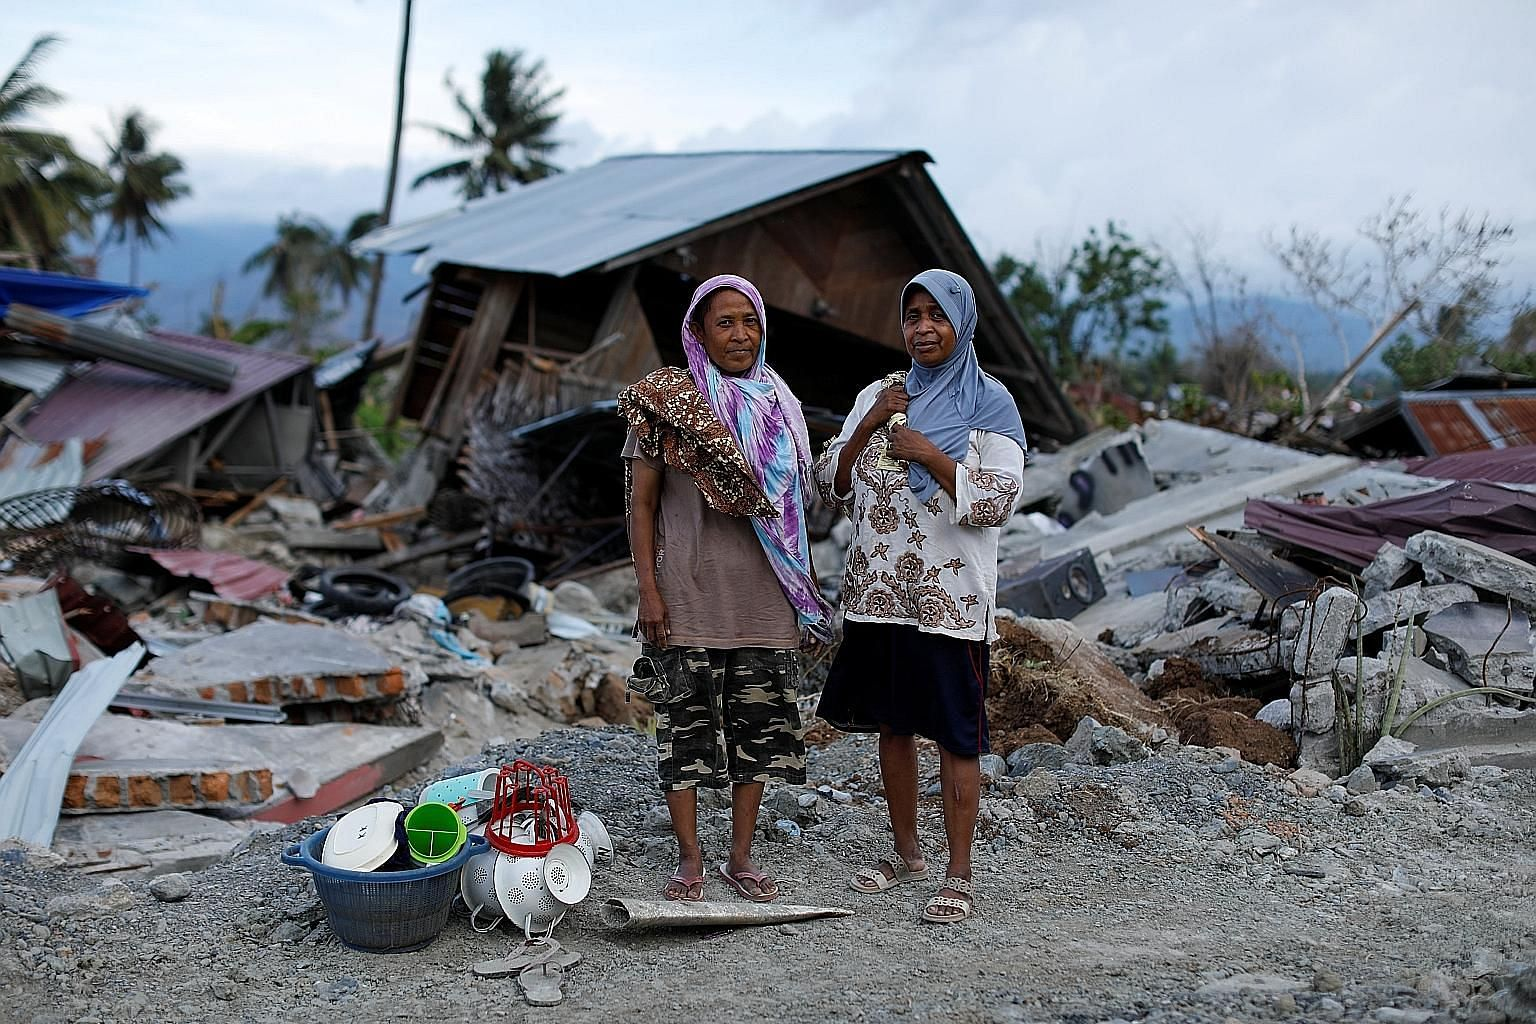 Sisters Sakinah, 49, and Zulfina, 55, with the items they had salvaged from their destroyed home in the Petobo neighbourhood of Palu, in Central Sulawesi, after a tremor-triggered tsunami struck in September.